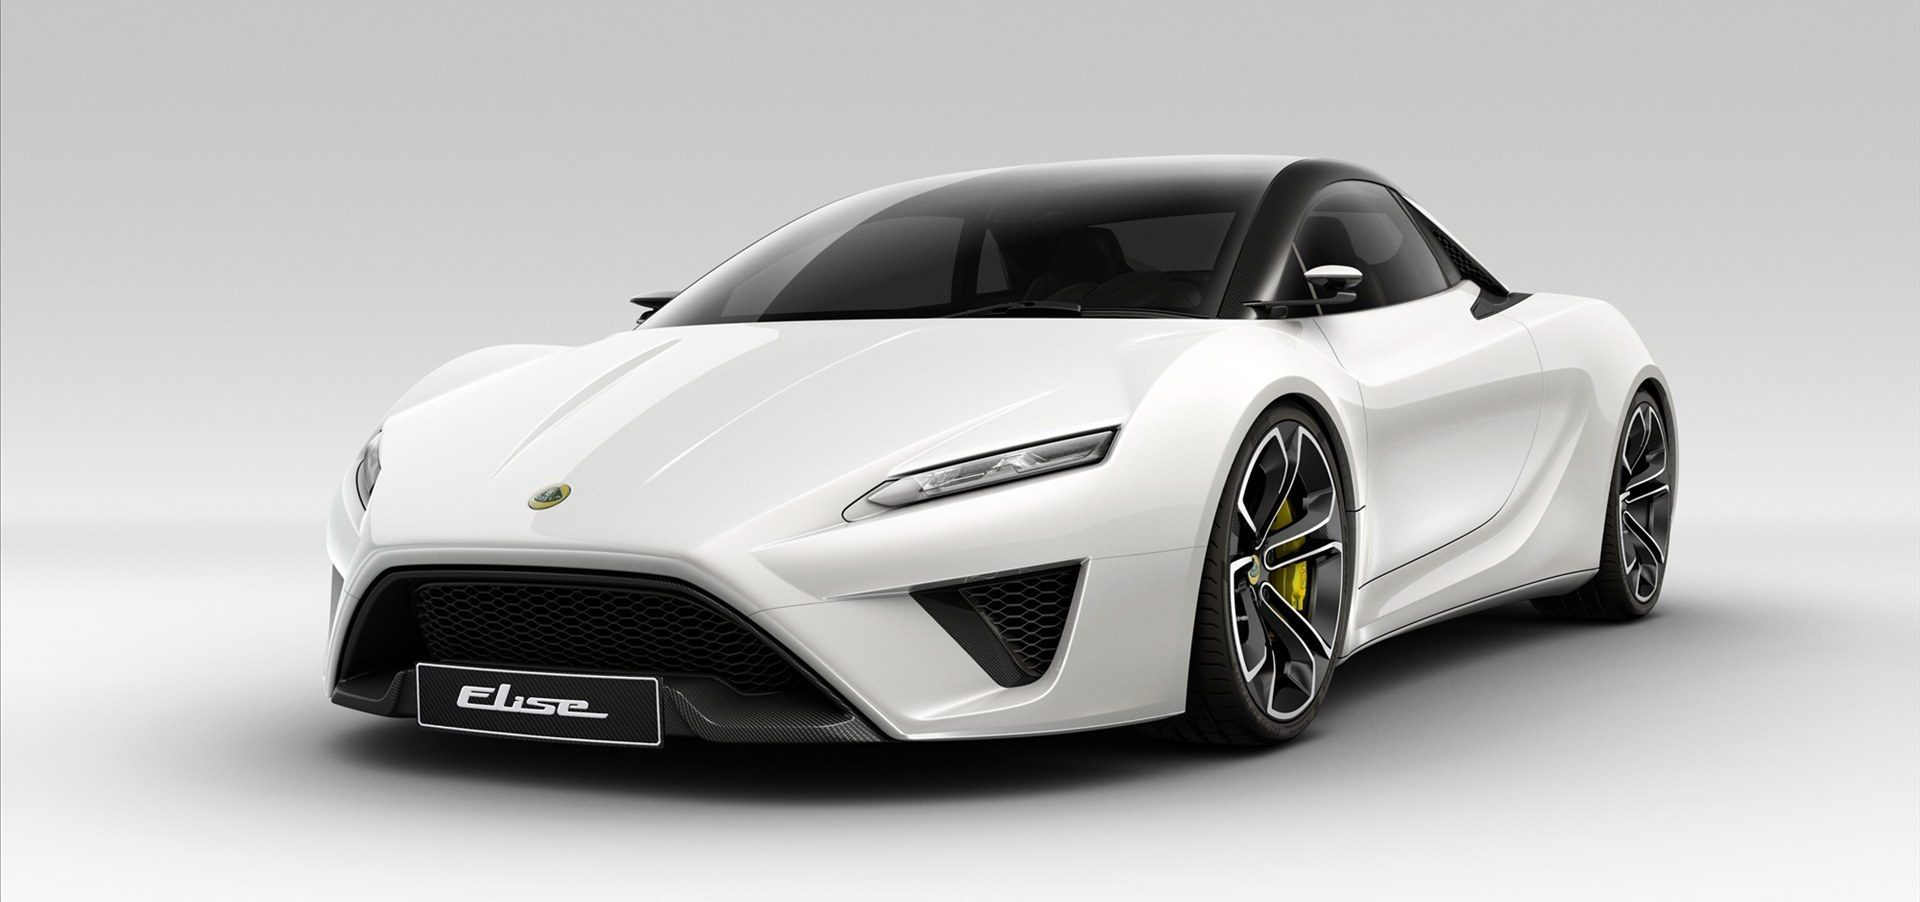 Lotus to go electric with a $2.5 million 1,000 hp hypercar